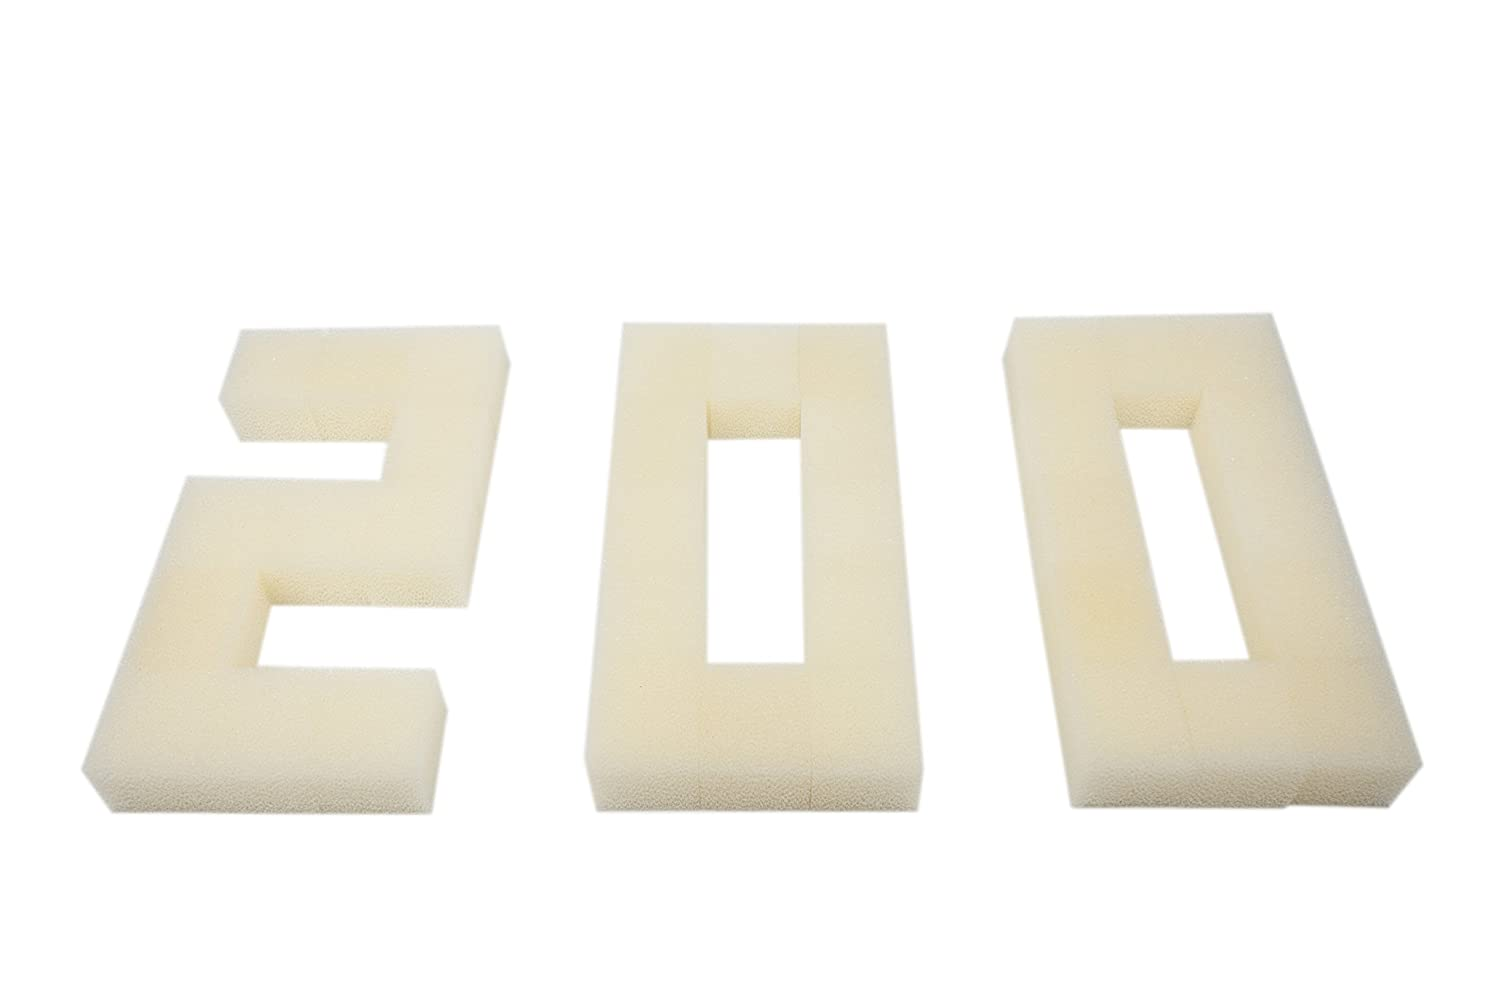 Pack of 200 LTWHOME Foam Filters Non-Branded Suitable for Fluval Edge Filter (Pack of 200)